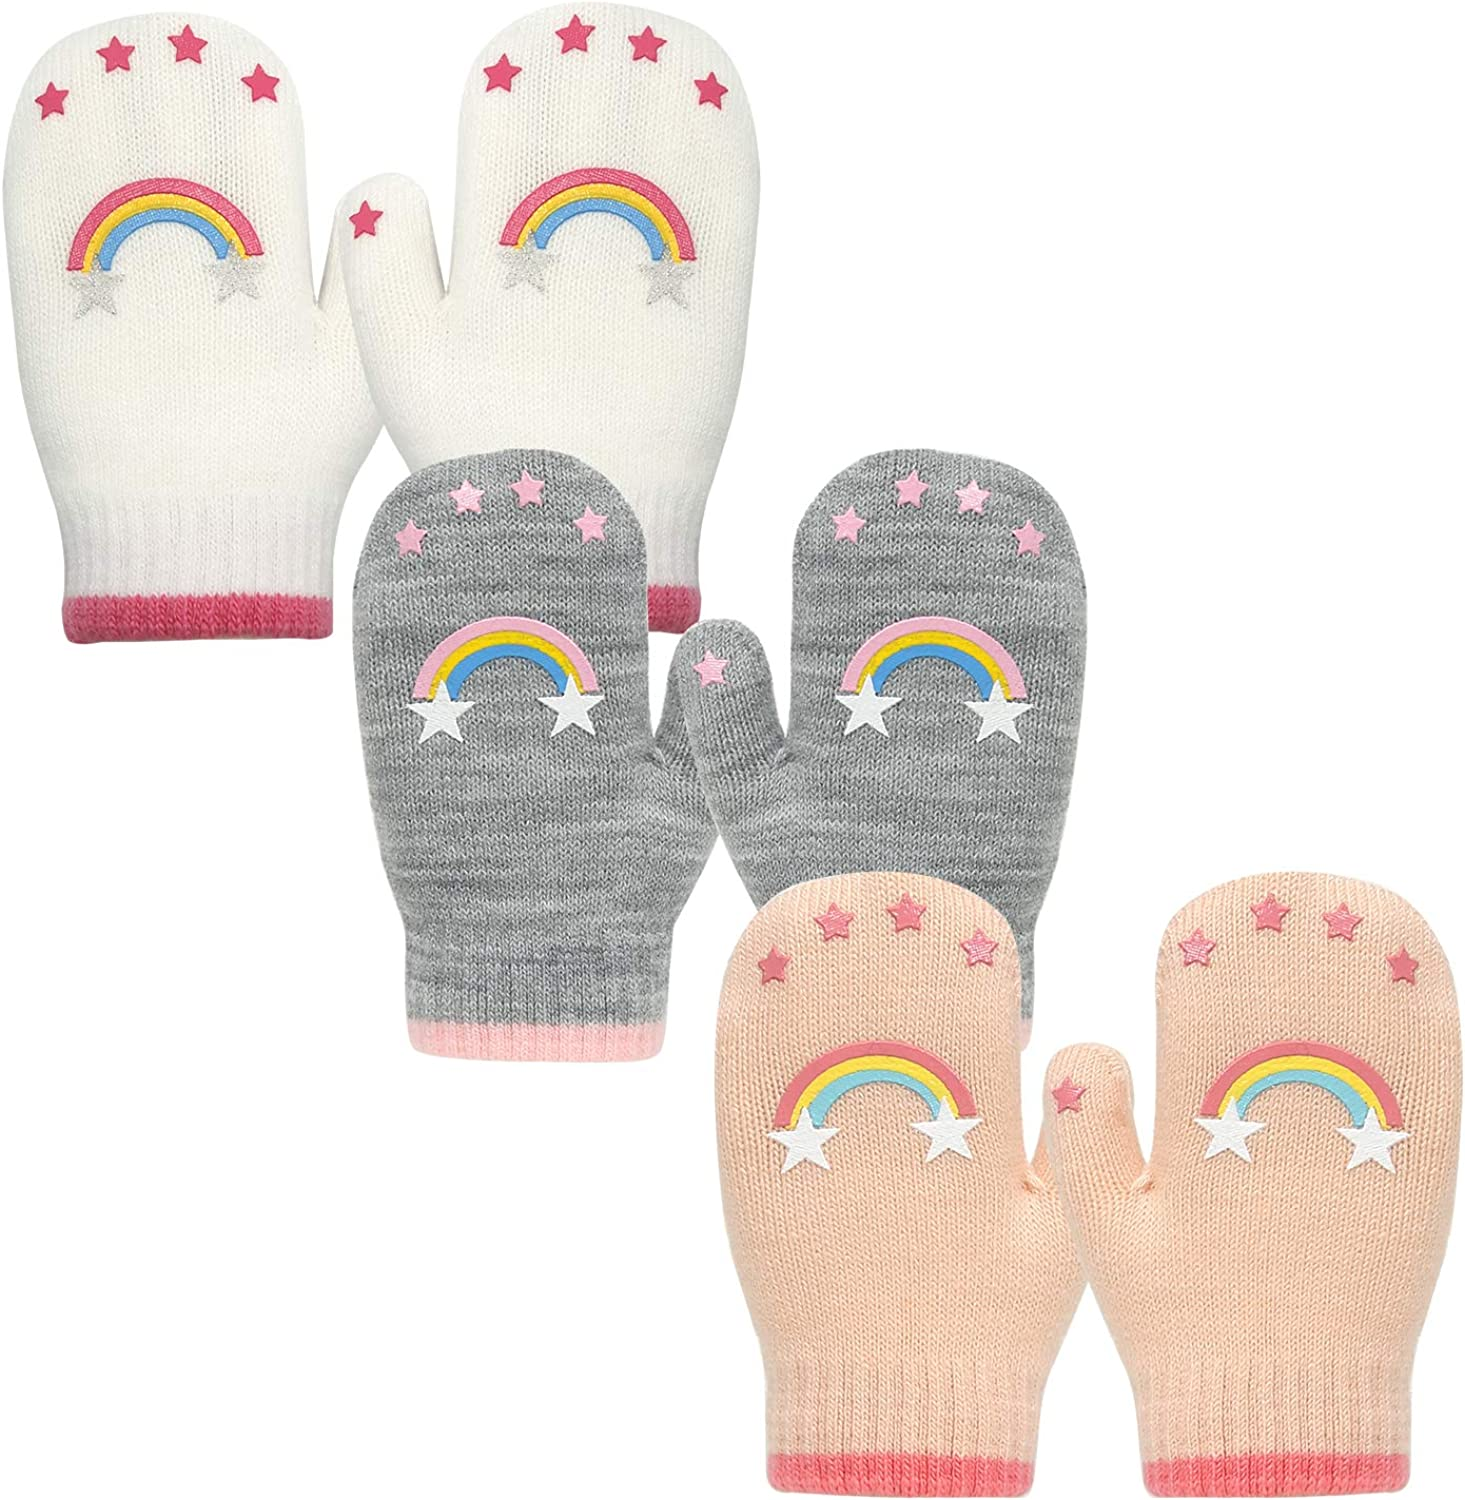 EvridWear Choice Infant Thermal Warm Stretch Mittens Knitted Toddlers Mail order cheap